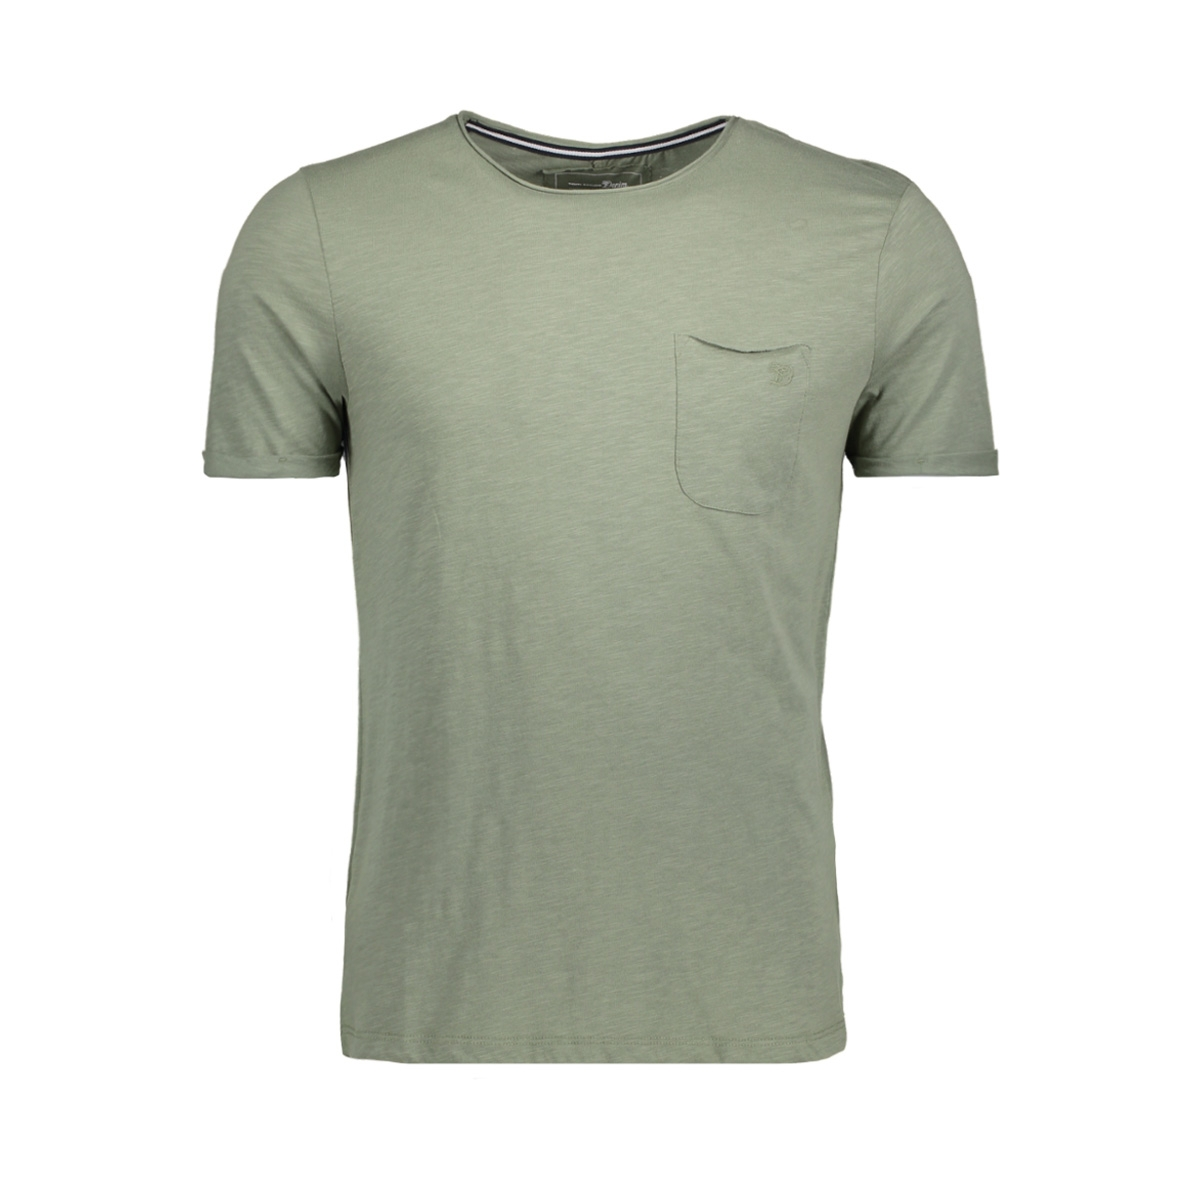 1055303.09.12 tom tailor t-shirt 7057